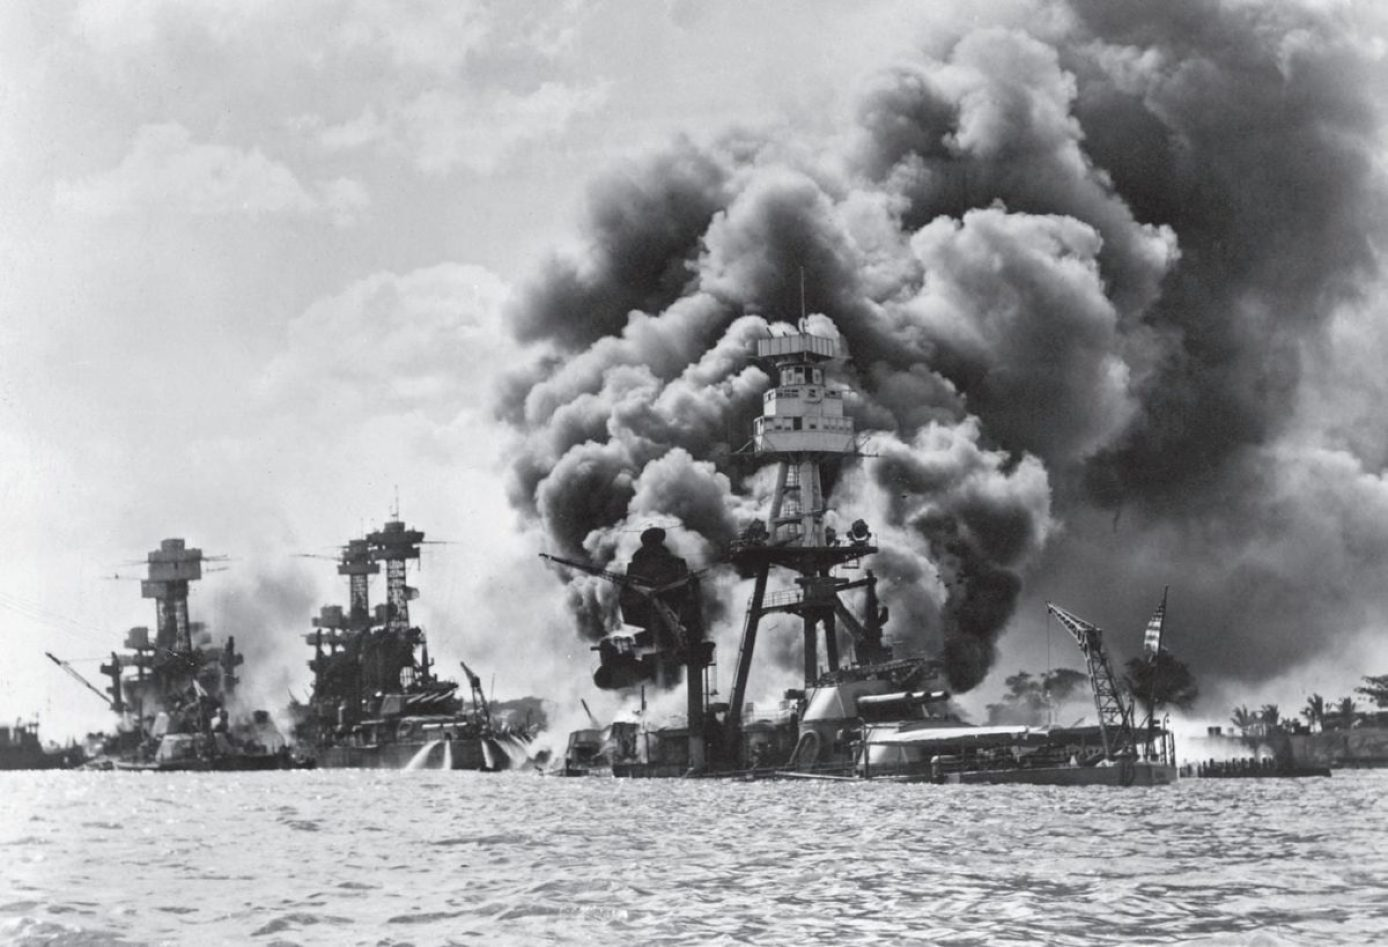 The Pacific Fleet's battle line burns at Pearl Harbor. War Plan Orange's original incarnation, where the fleet would sail for a decisive battle with the Japanese after which the Philippines would be relieved, was rendered moot by the attack. It was replaced by War Plan Rainbow 5, based in large part on a pre-war strategy developed by Marine Corps visionaries. National Archives Photo